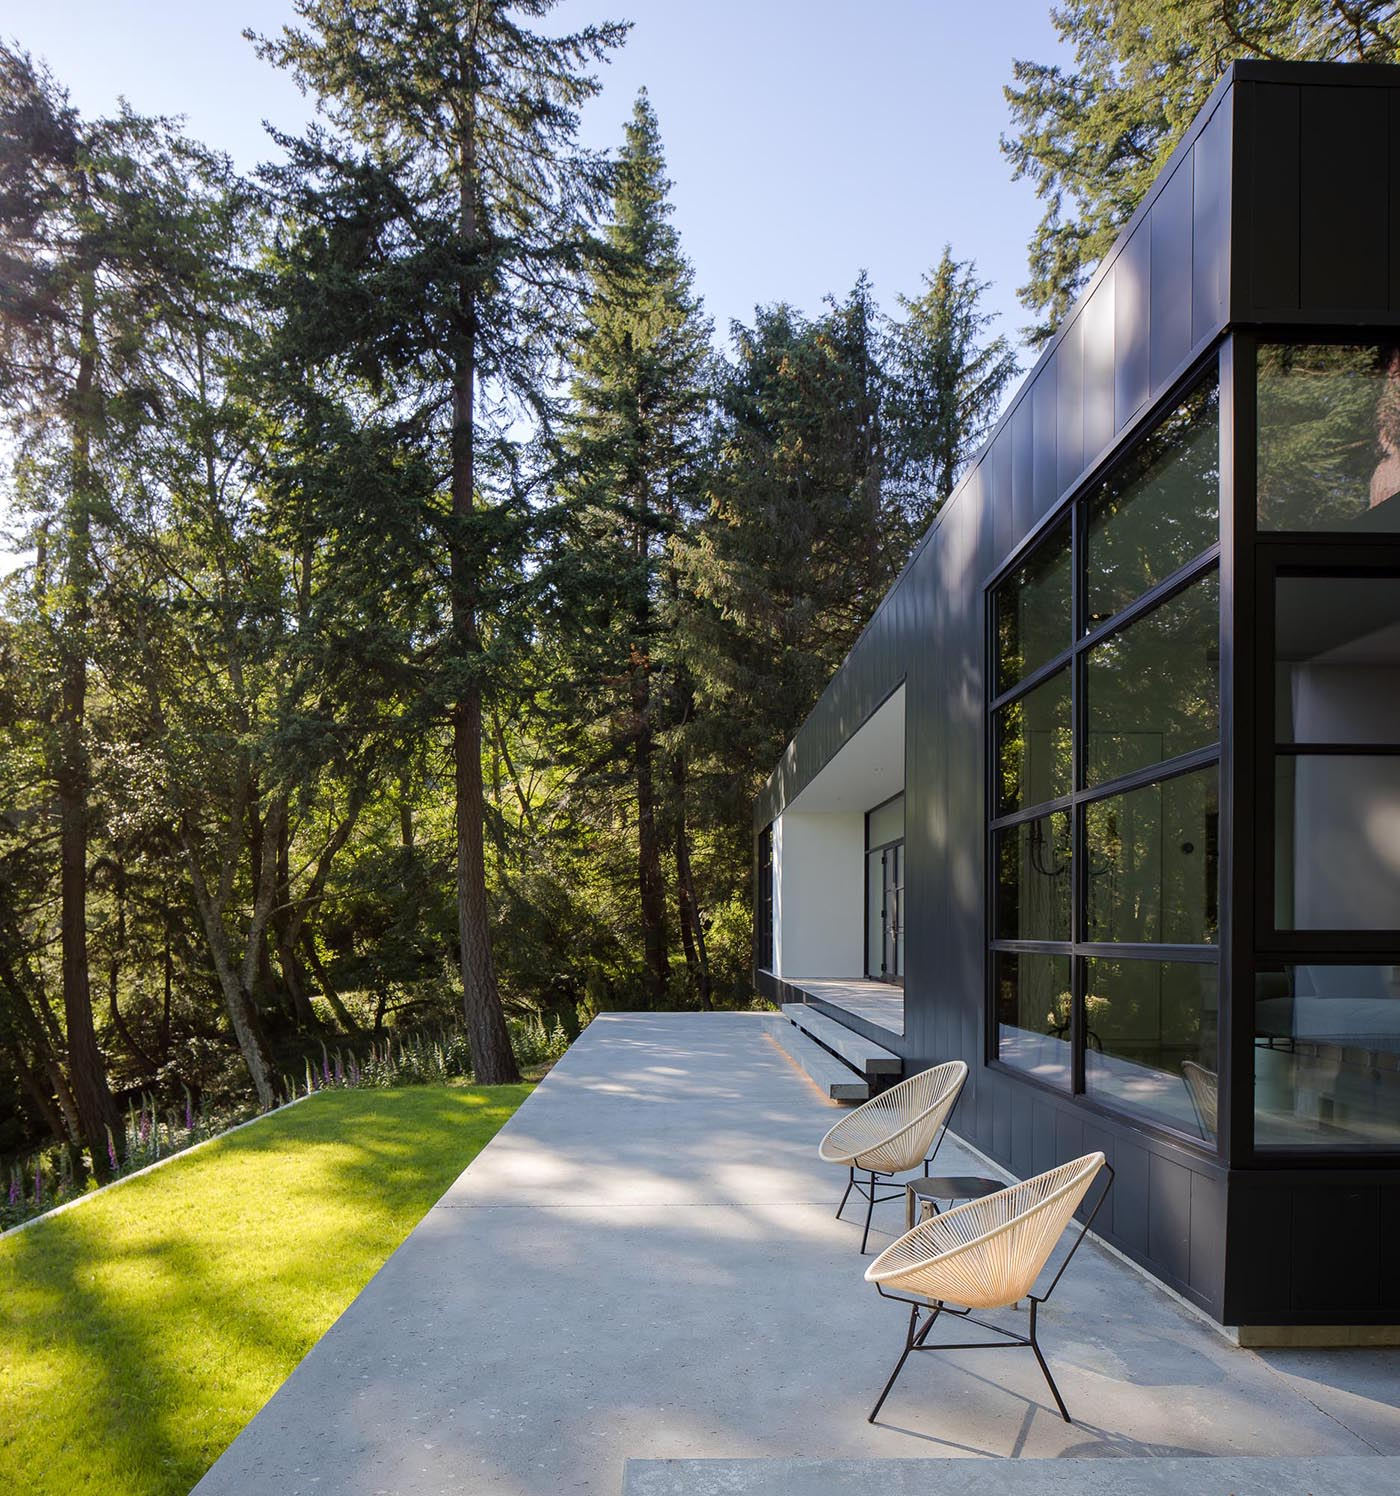 Black framed doors open the interior spaces of this modern home to the rear concrete terrace.